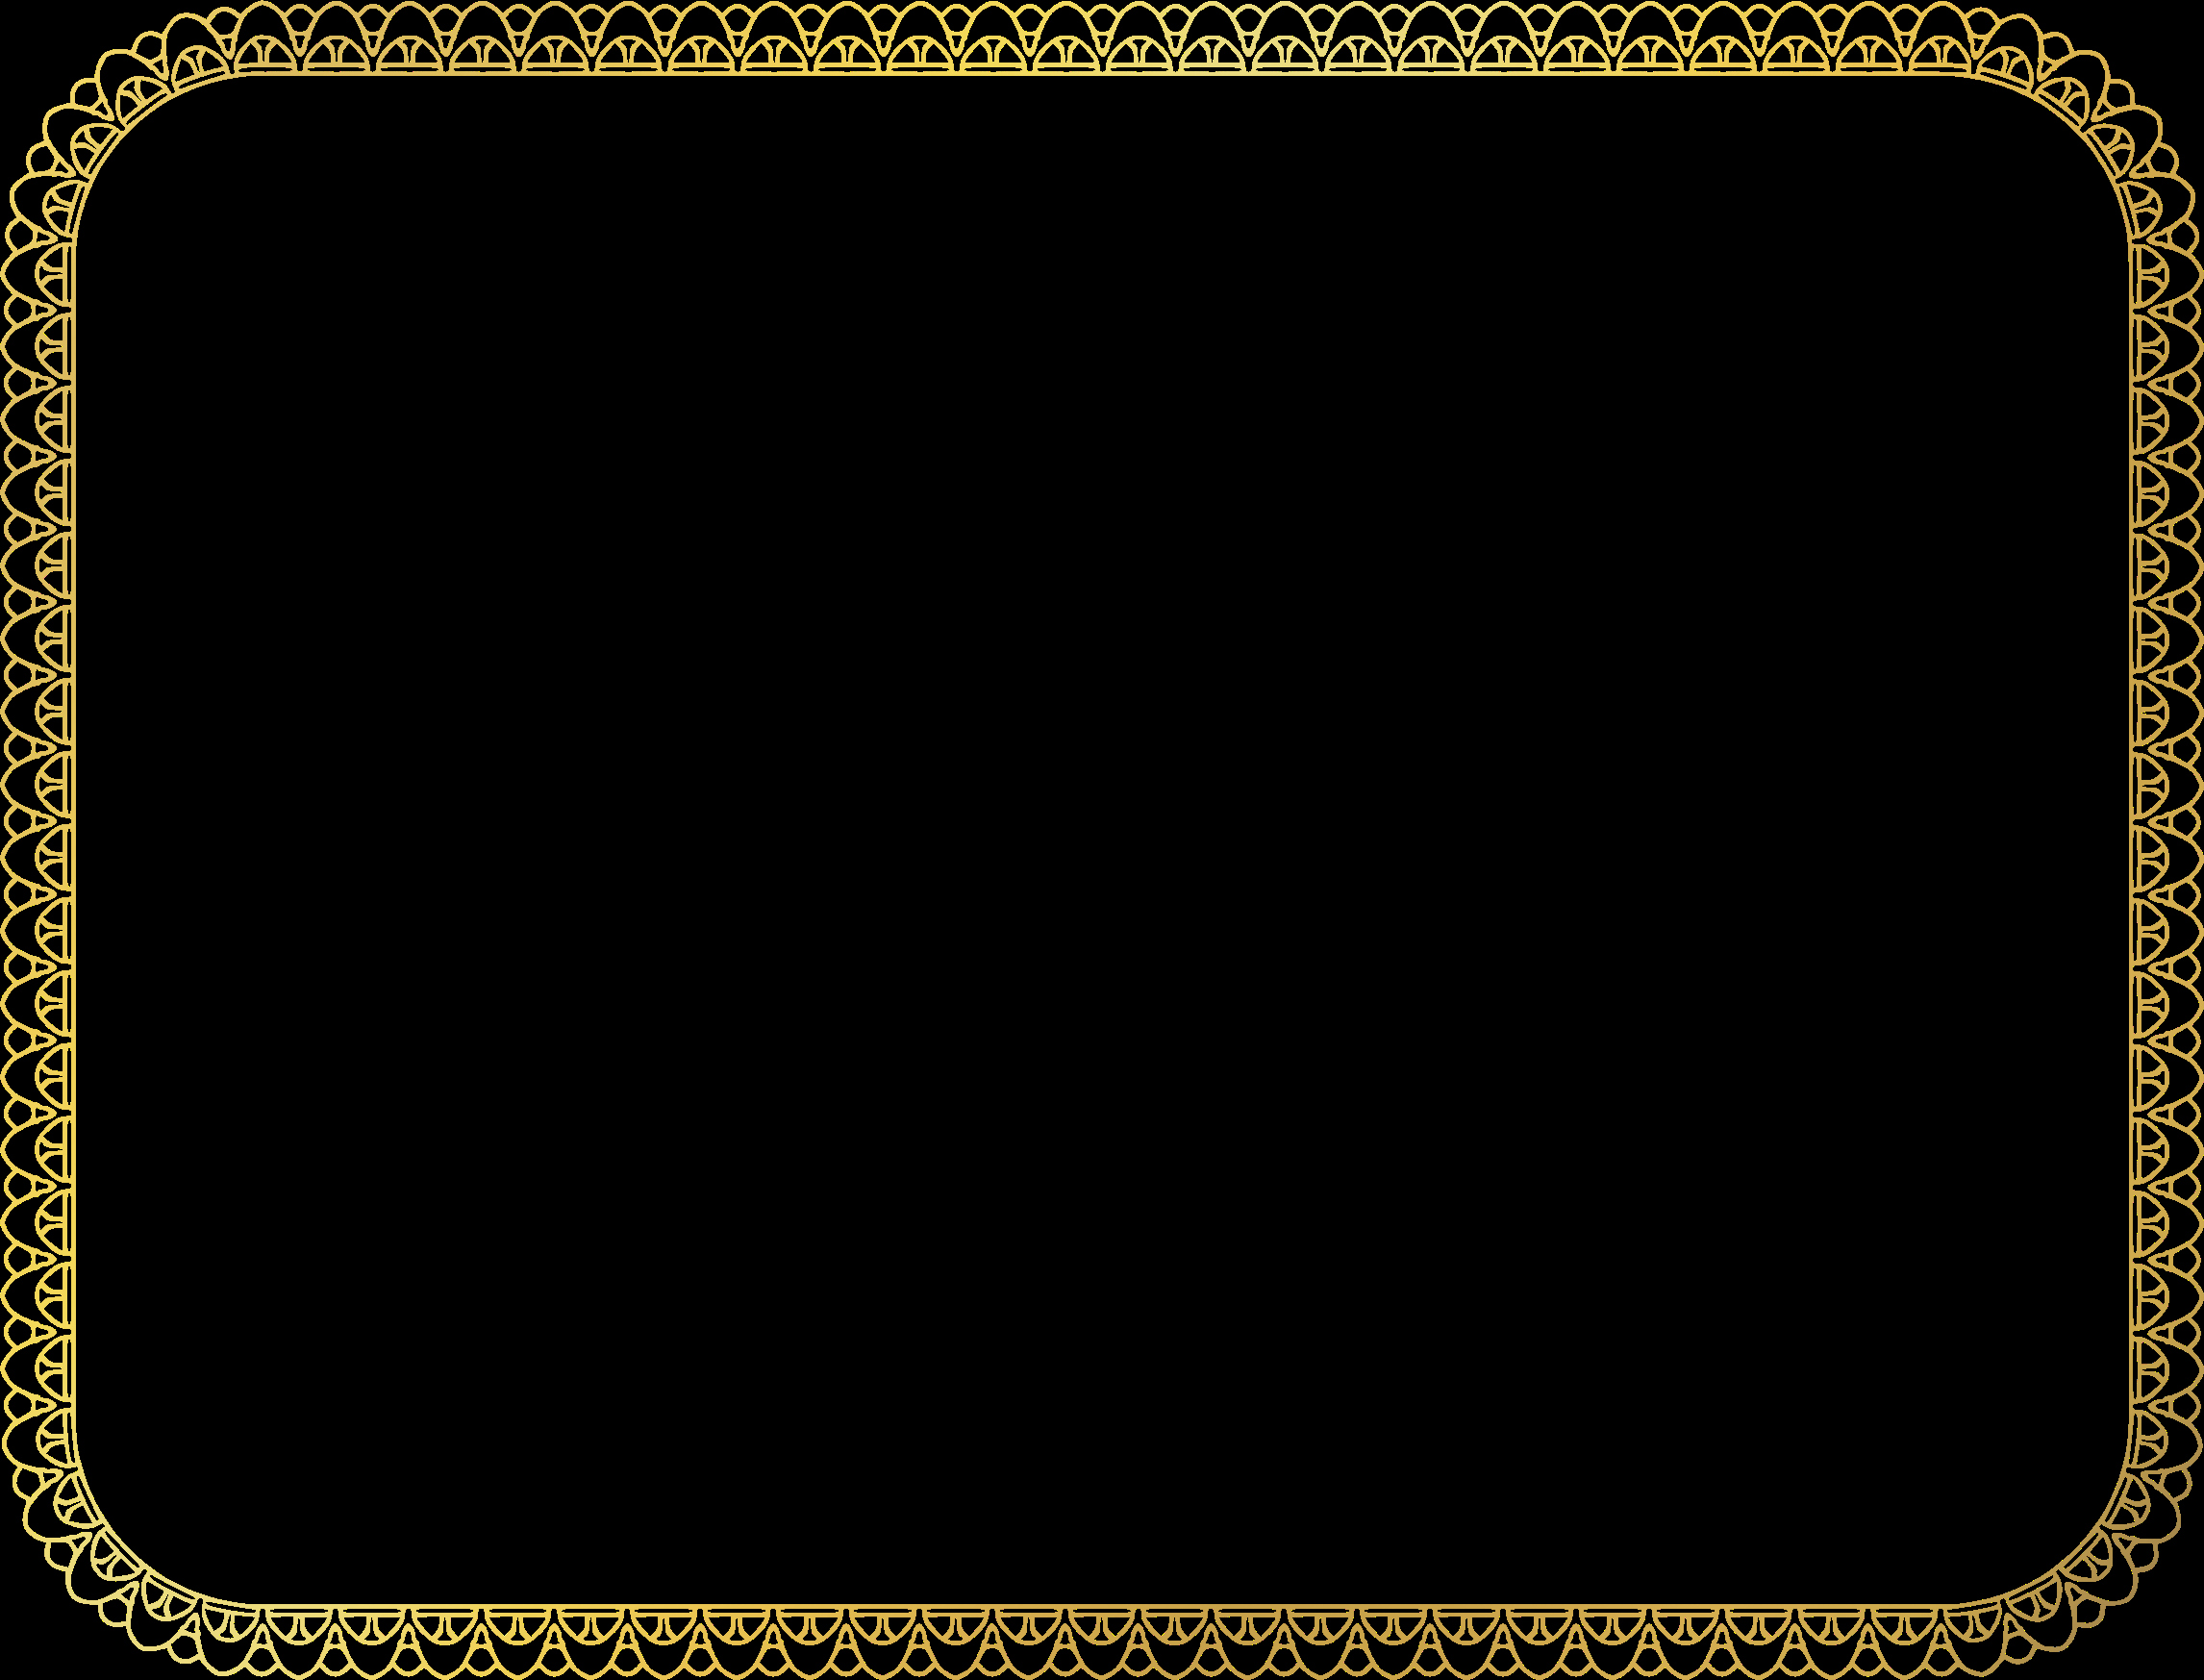 Certificate Border Design Png Lovely Certificate Border 2 Us Size by Arvin61r58